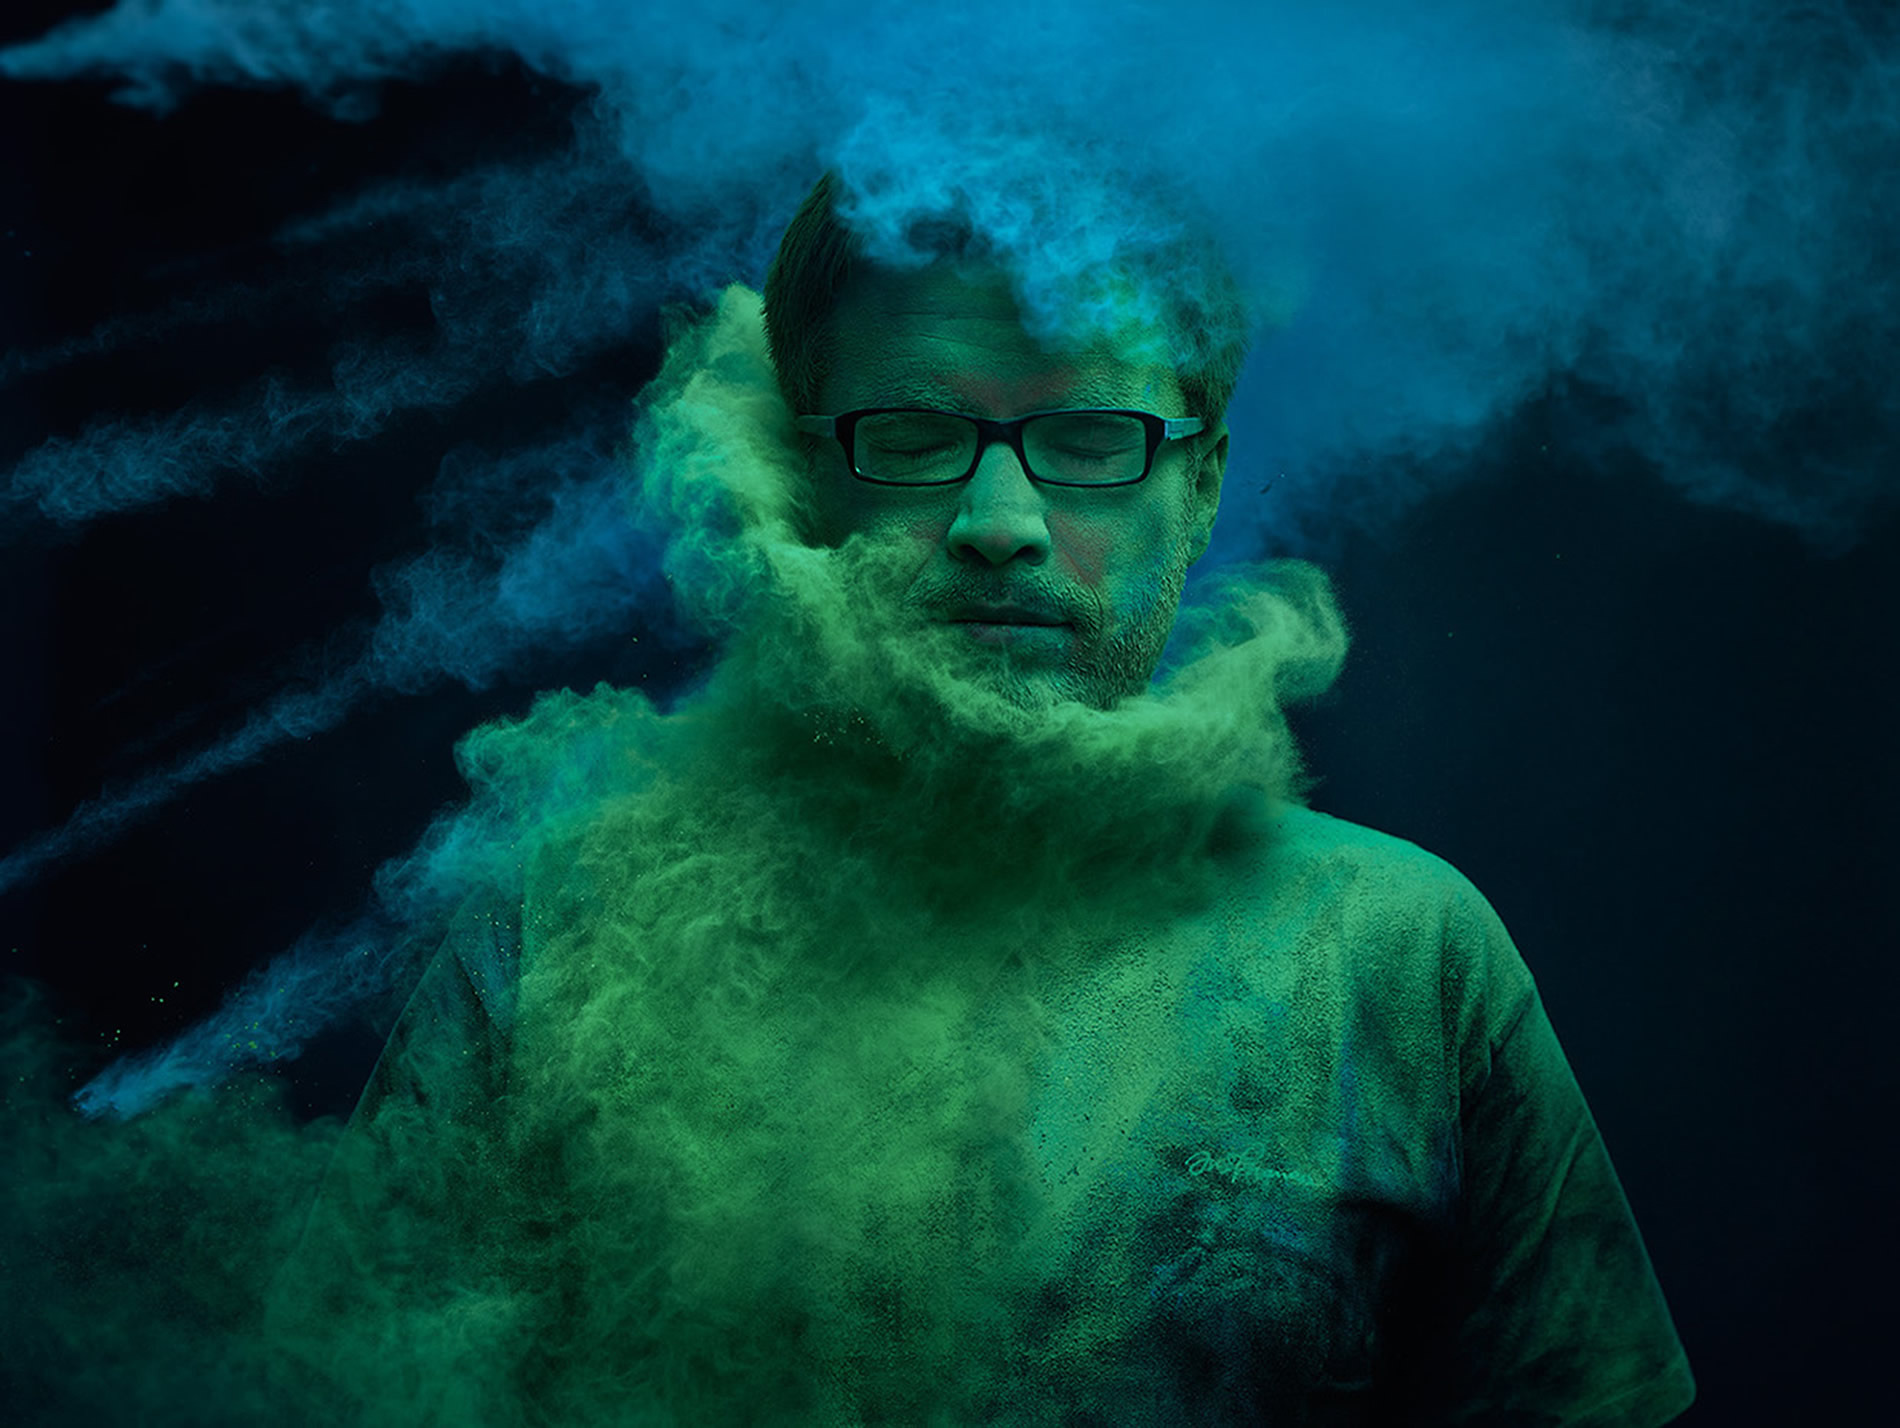 green and blue powder on man with glasses, Ars Thanea Portraits